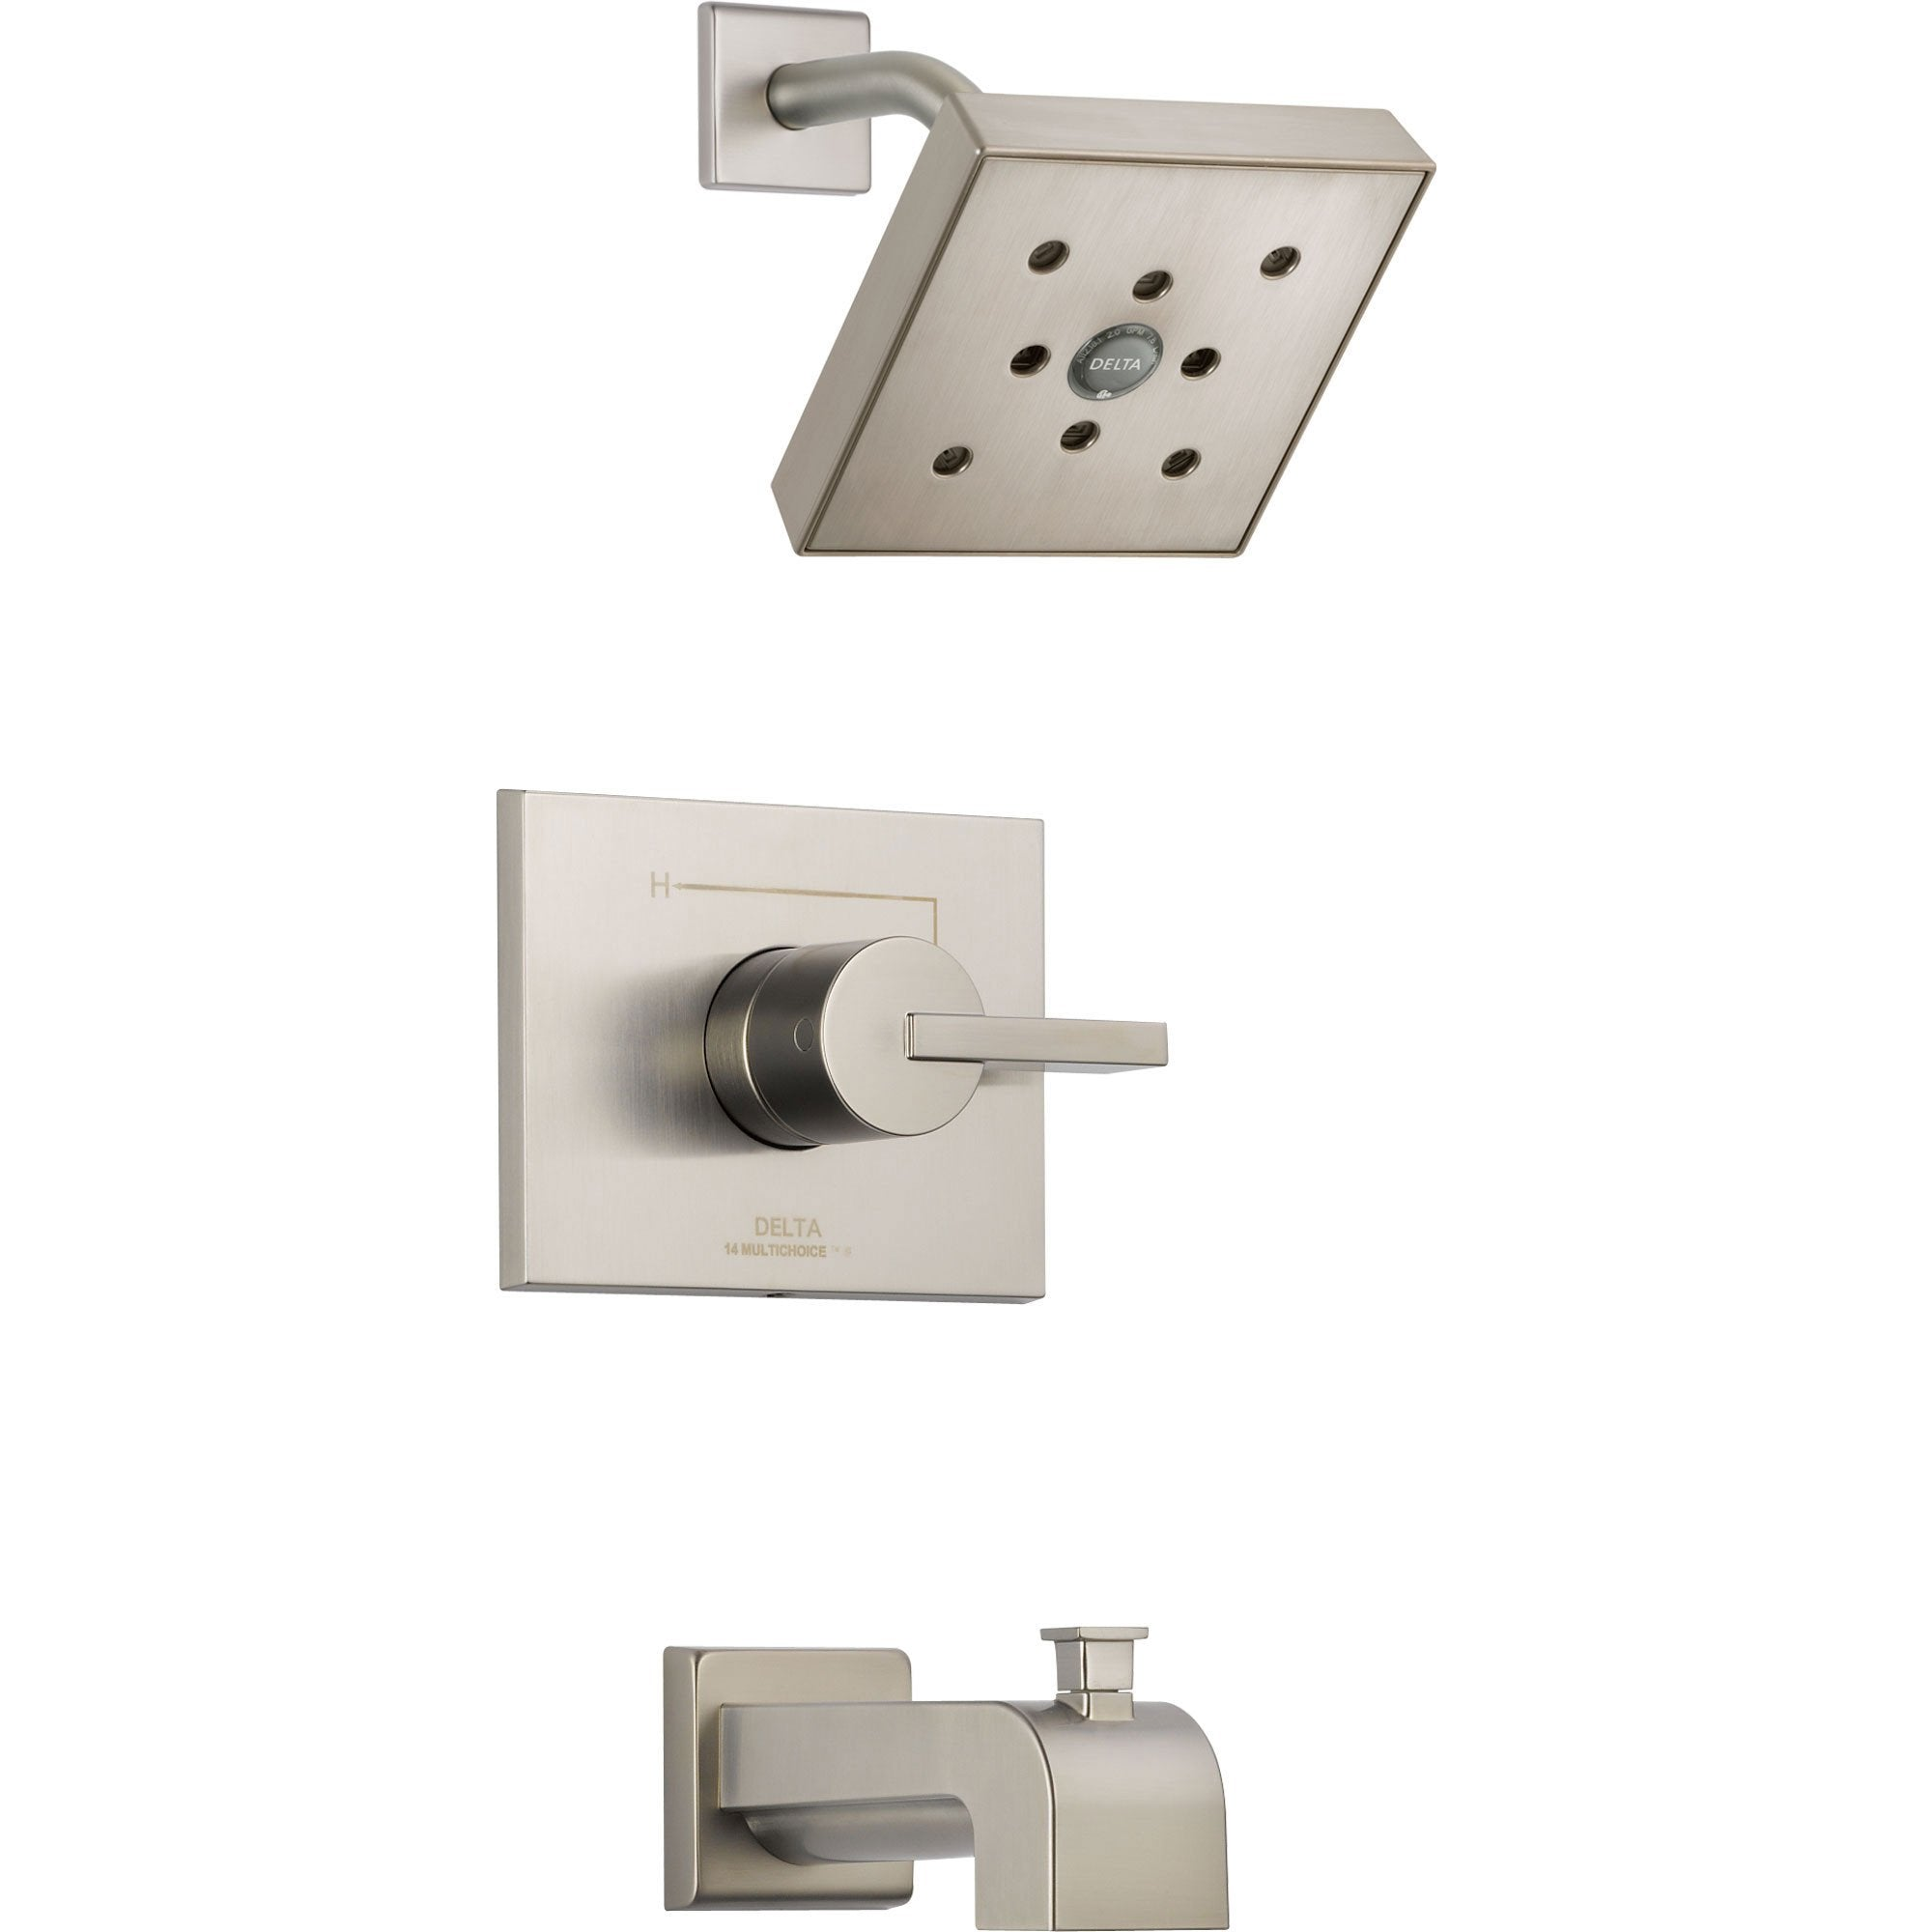 Delta Vero Stainless Steel Finish Tub and Shower Combination Faucet Trim 521946